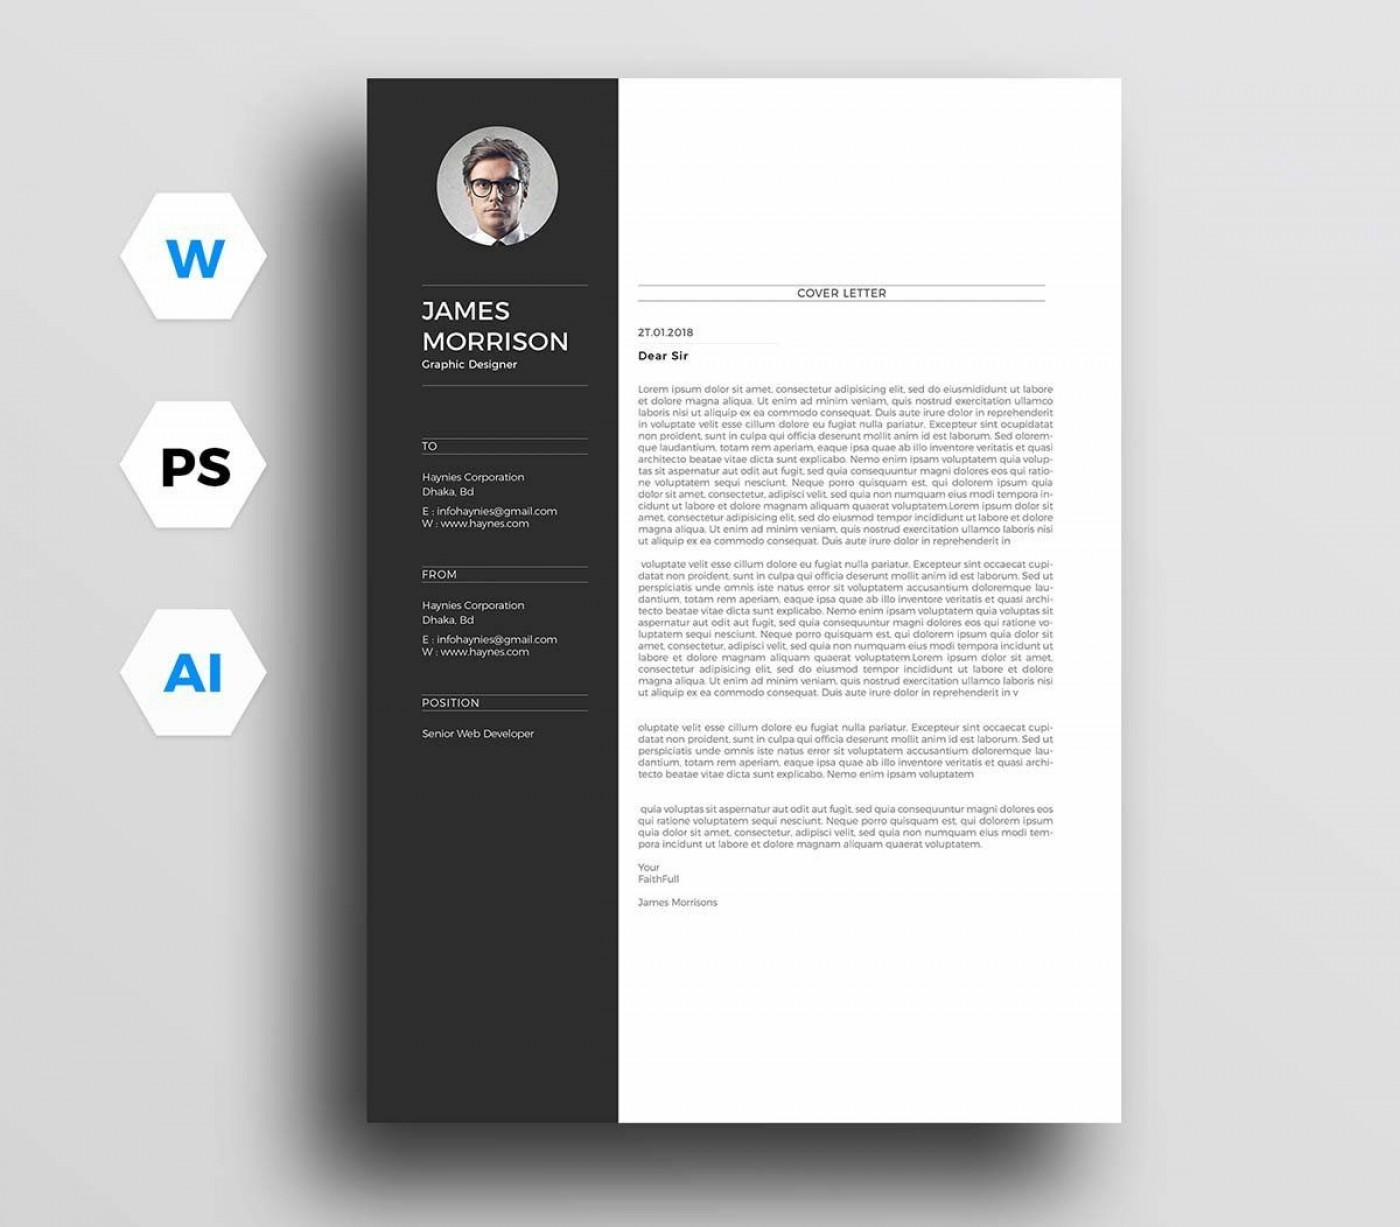 004 Fantastic Resume Cover Letter Template Microsoft Word High Def 1400